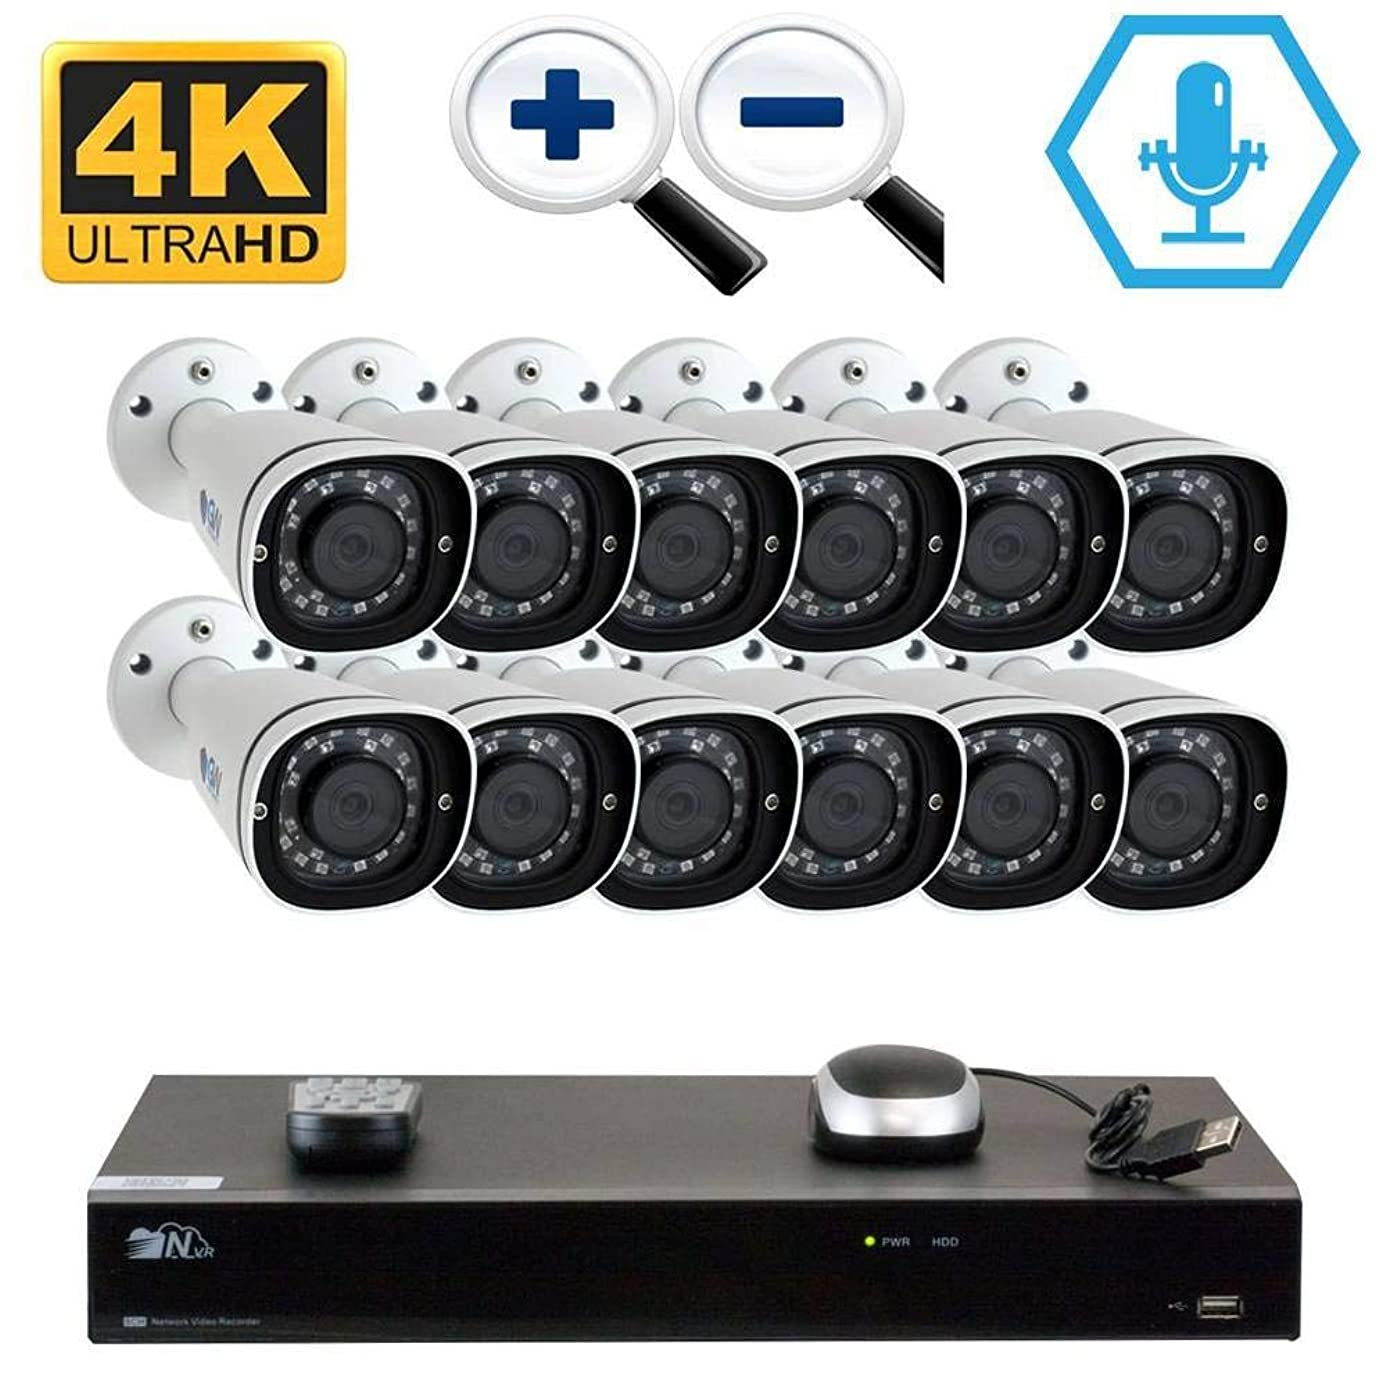 GW 16CH H.265 PoE NVR Ultra-HD 4K (3840x2160) Video & Audio Security Camera System with 12 x 4K (8MP) Microphone 3X Motorized Zoom IP Bullet Camera, 100ft Night Vision, 8TB HDD wyjg9121643